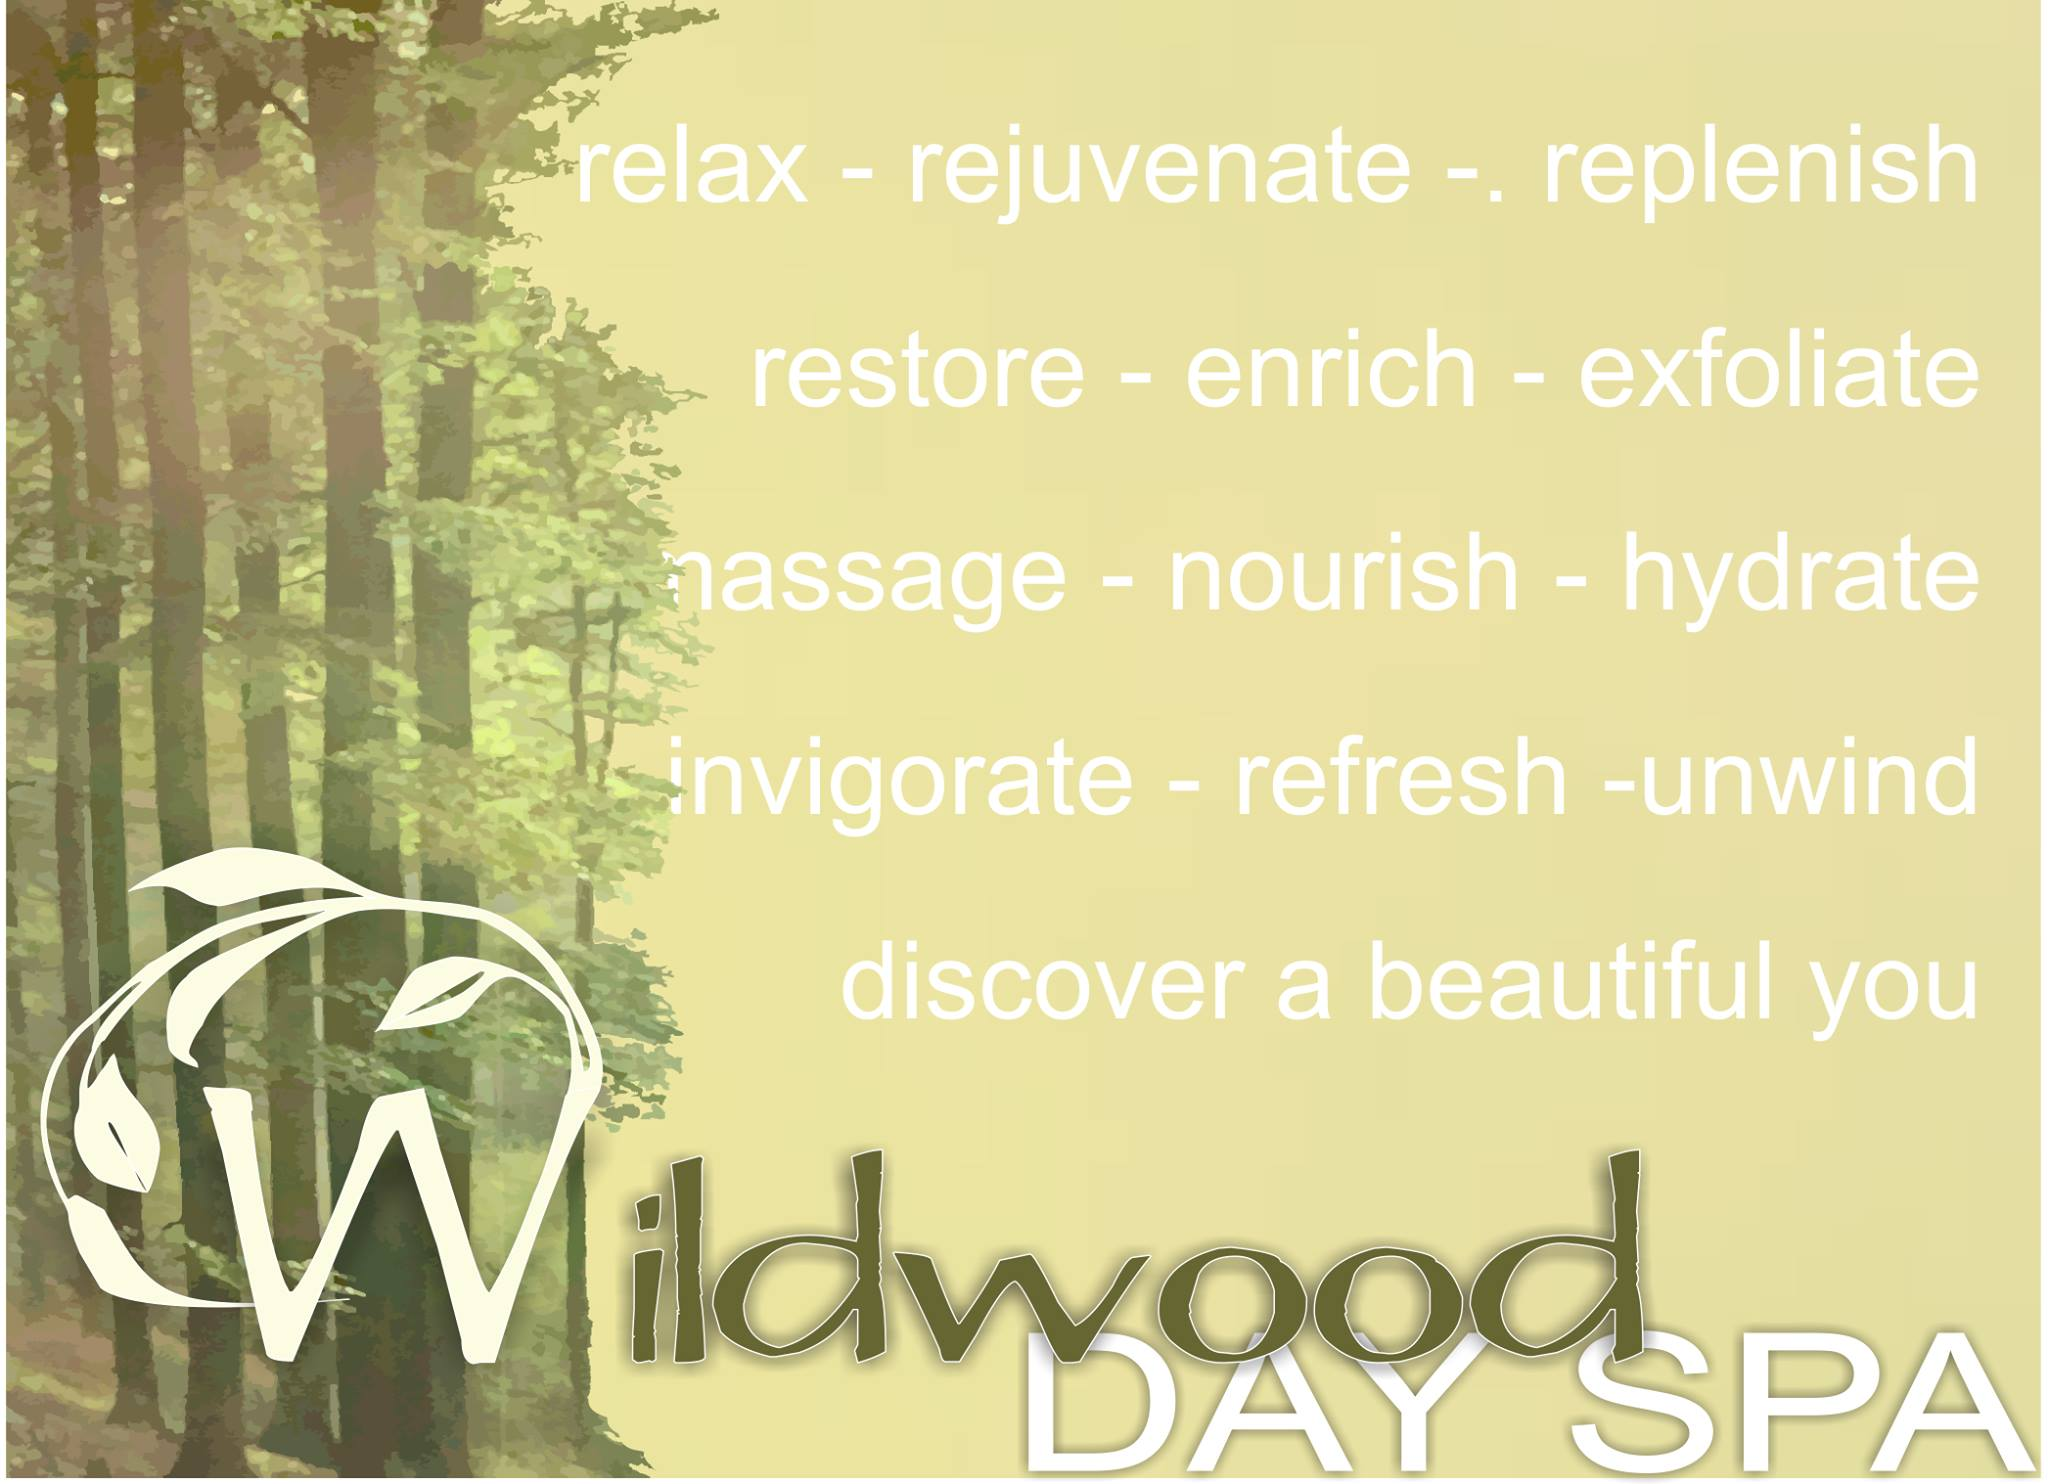 Wildwood Day Spa.jpg